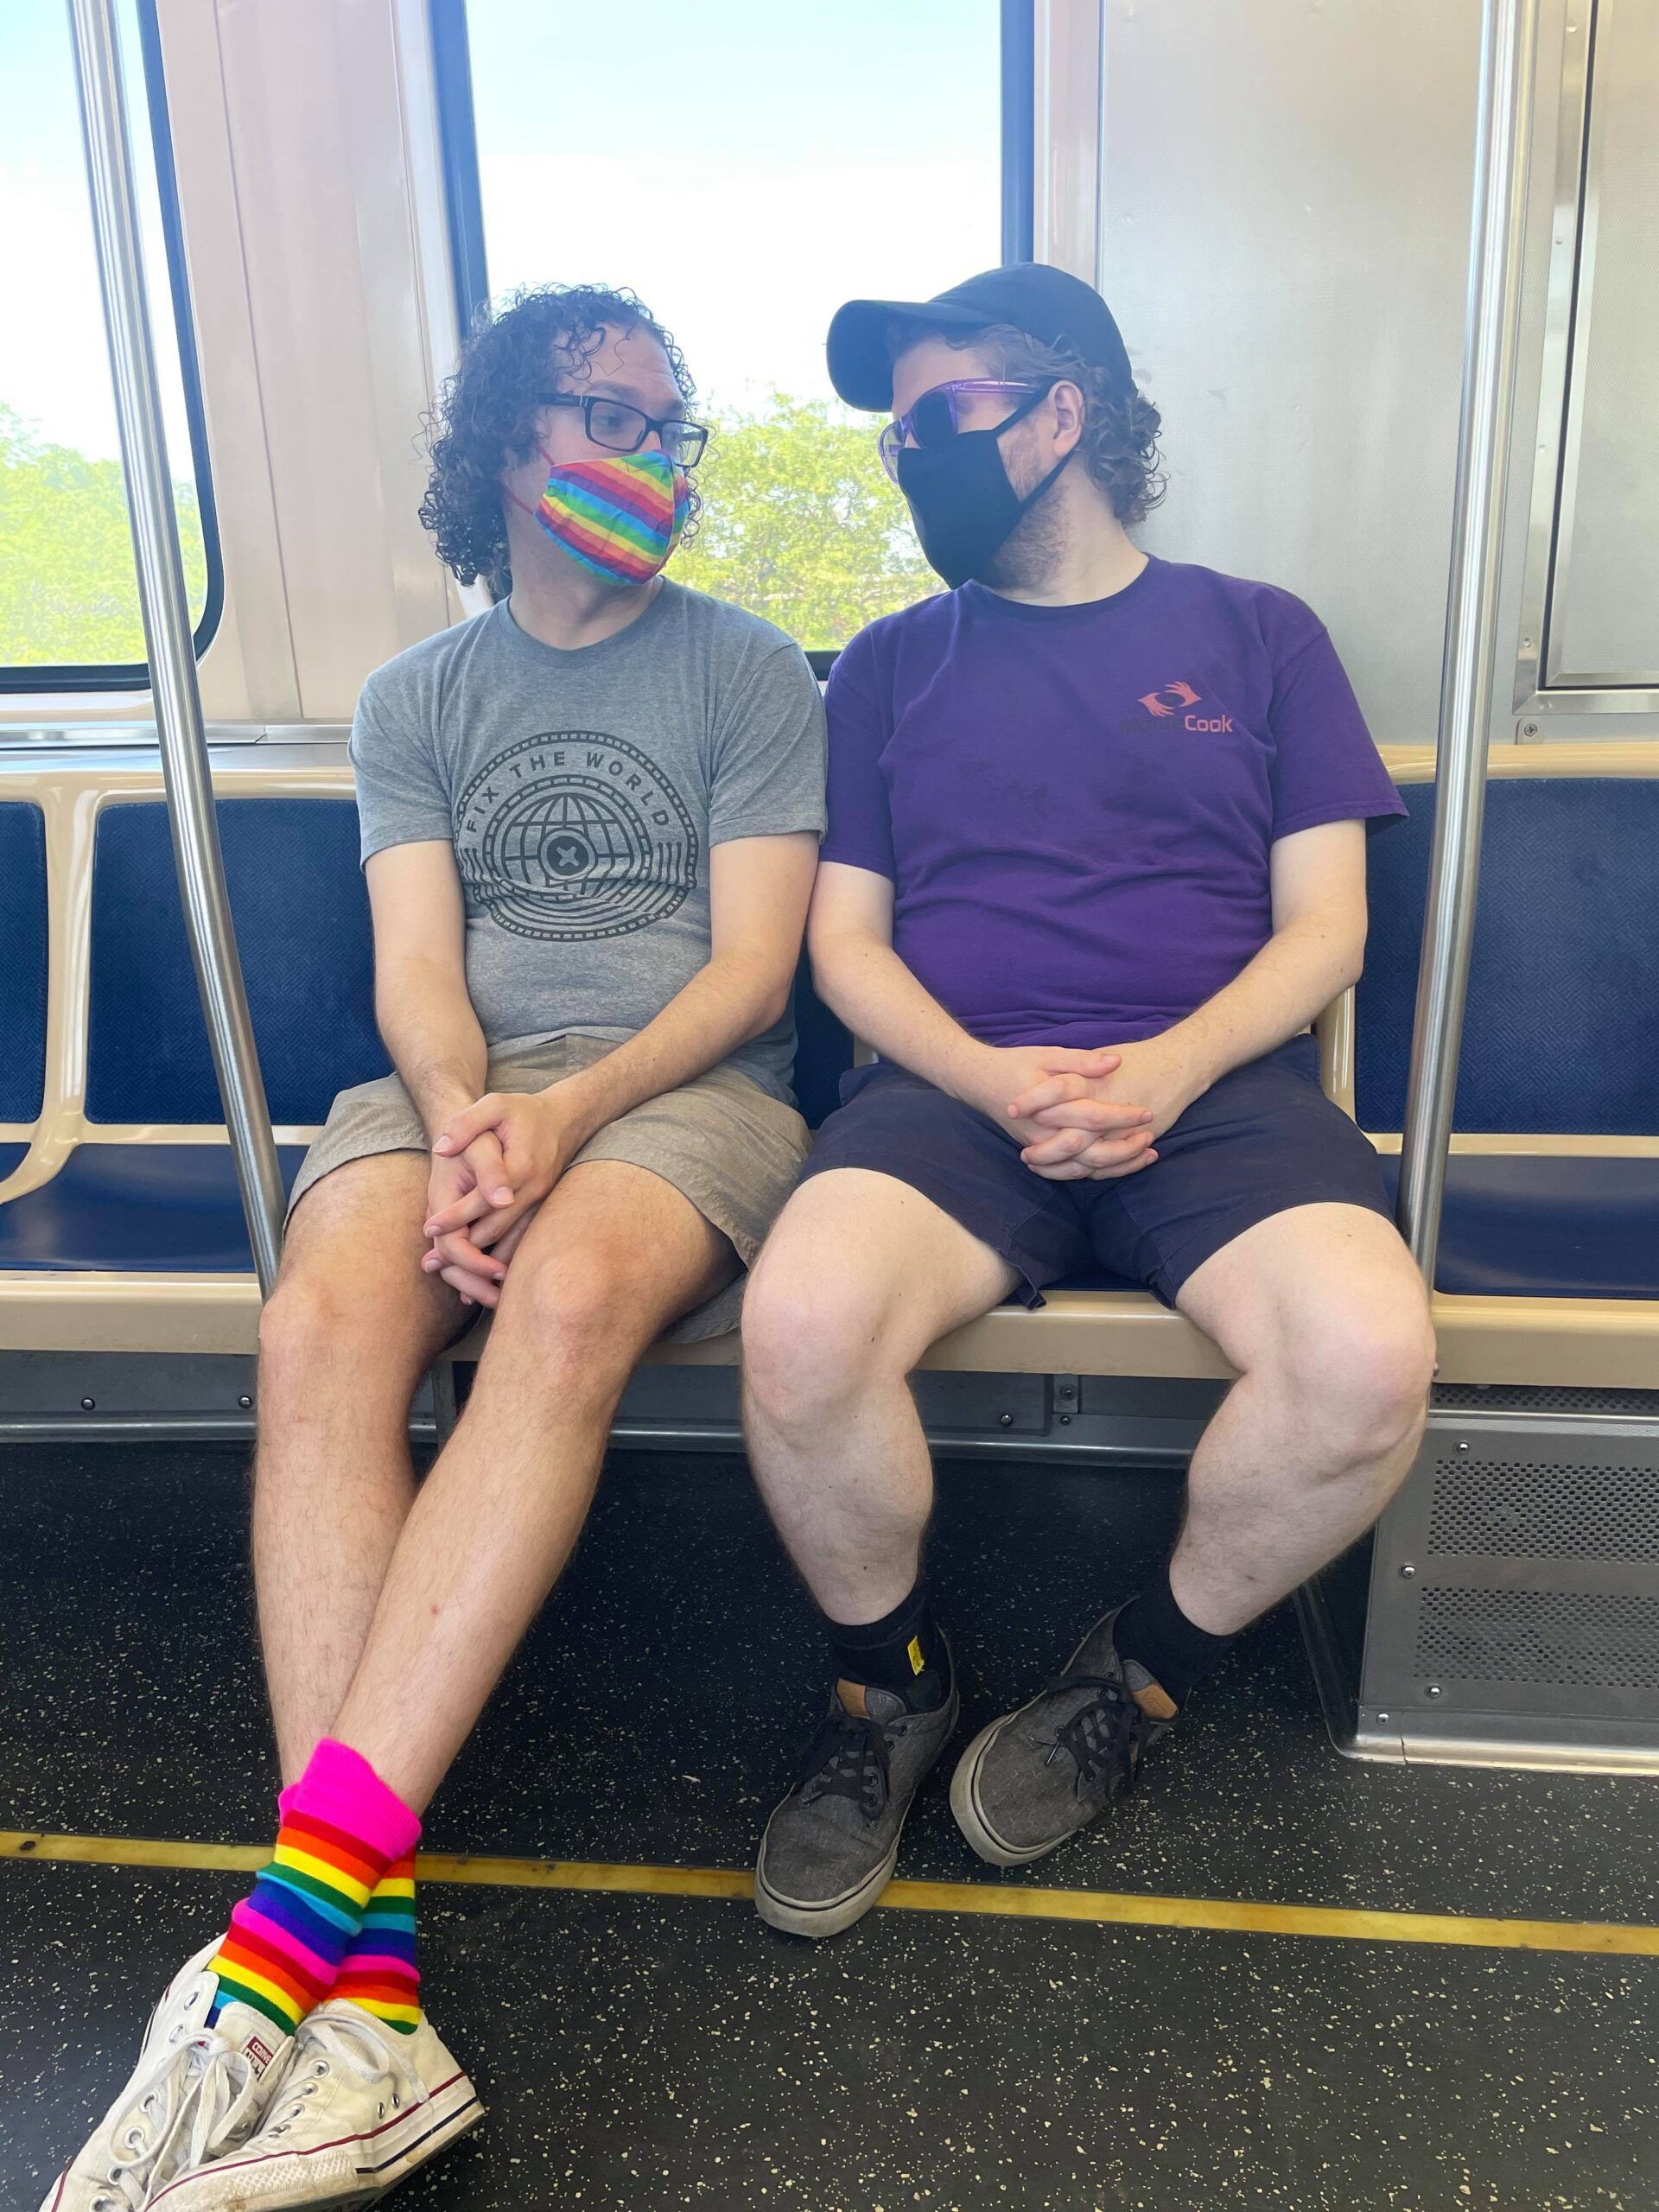 My bf and I looking at each other on the train. We're wearing masks